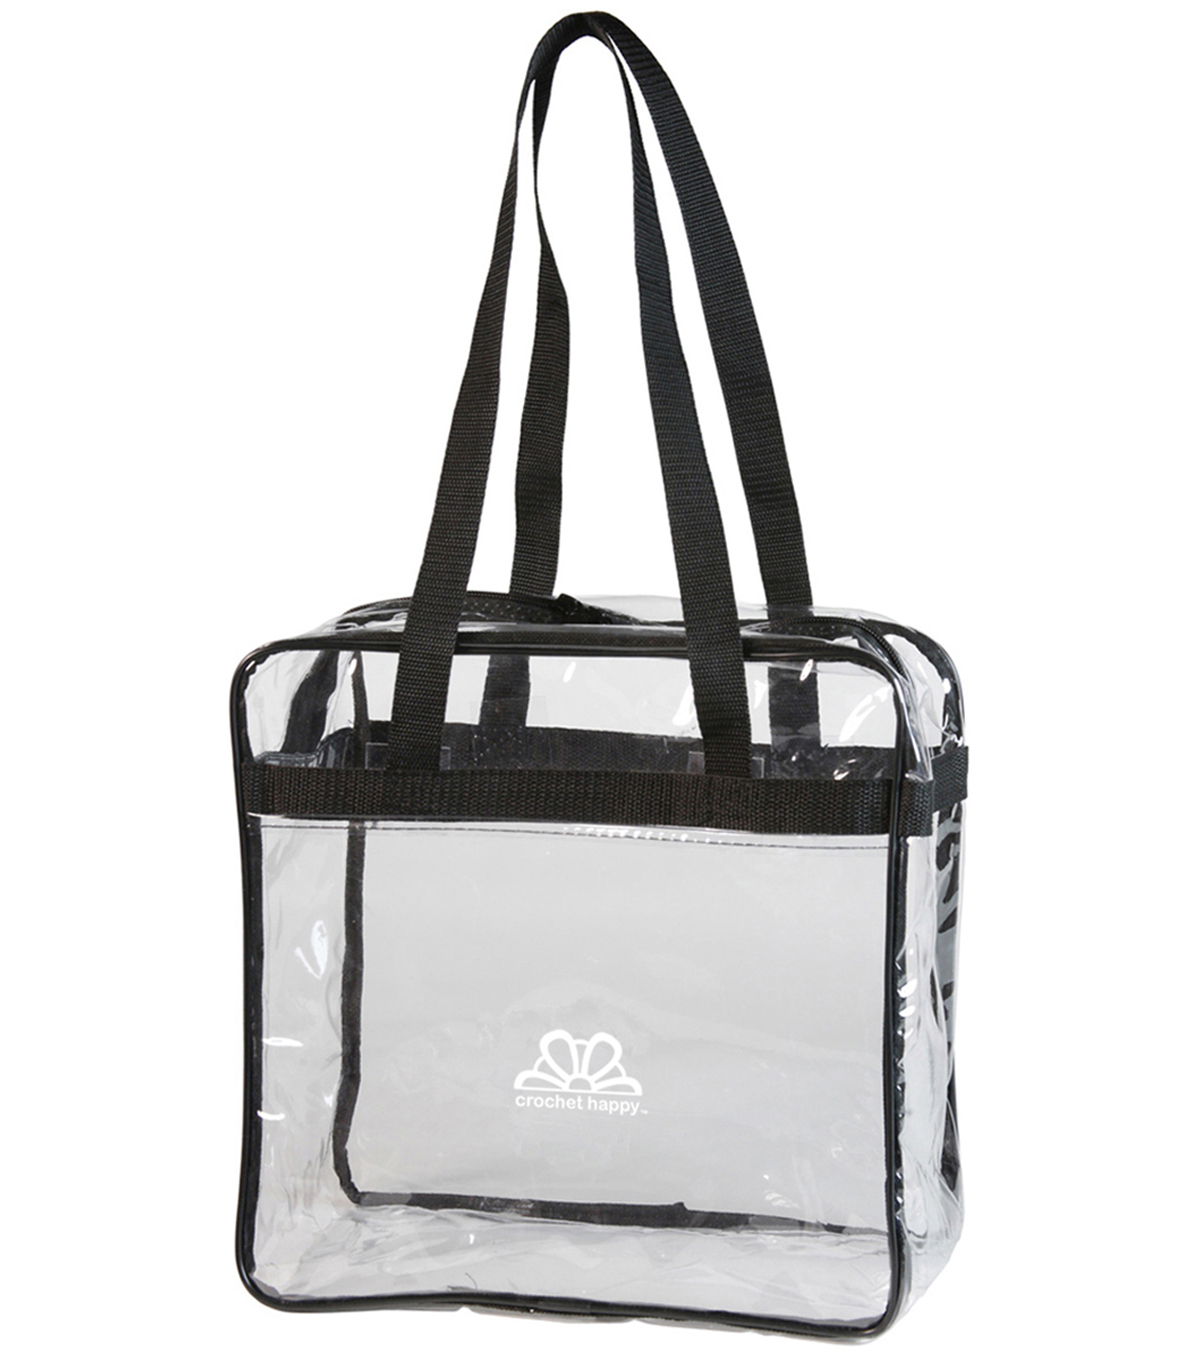 K1C2 Crochet Happy Tote-Clear